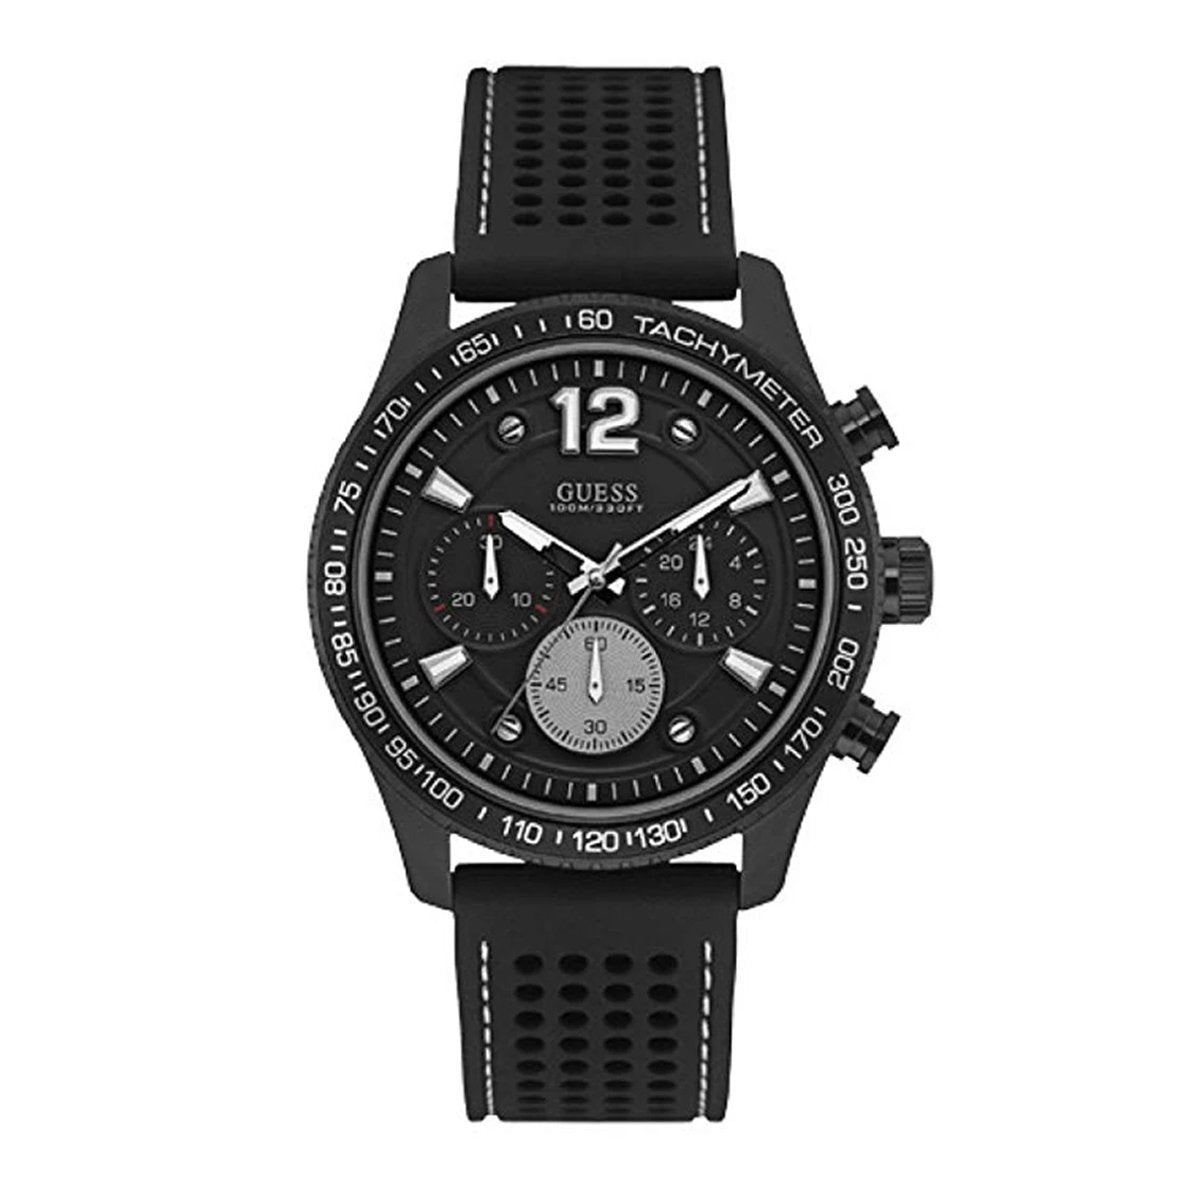 Guess Fleet Chronograph Black - Watches & Crystals